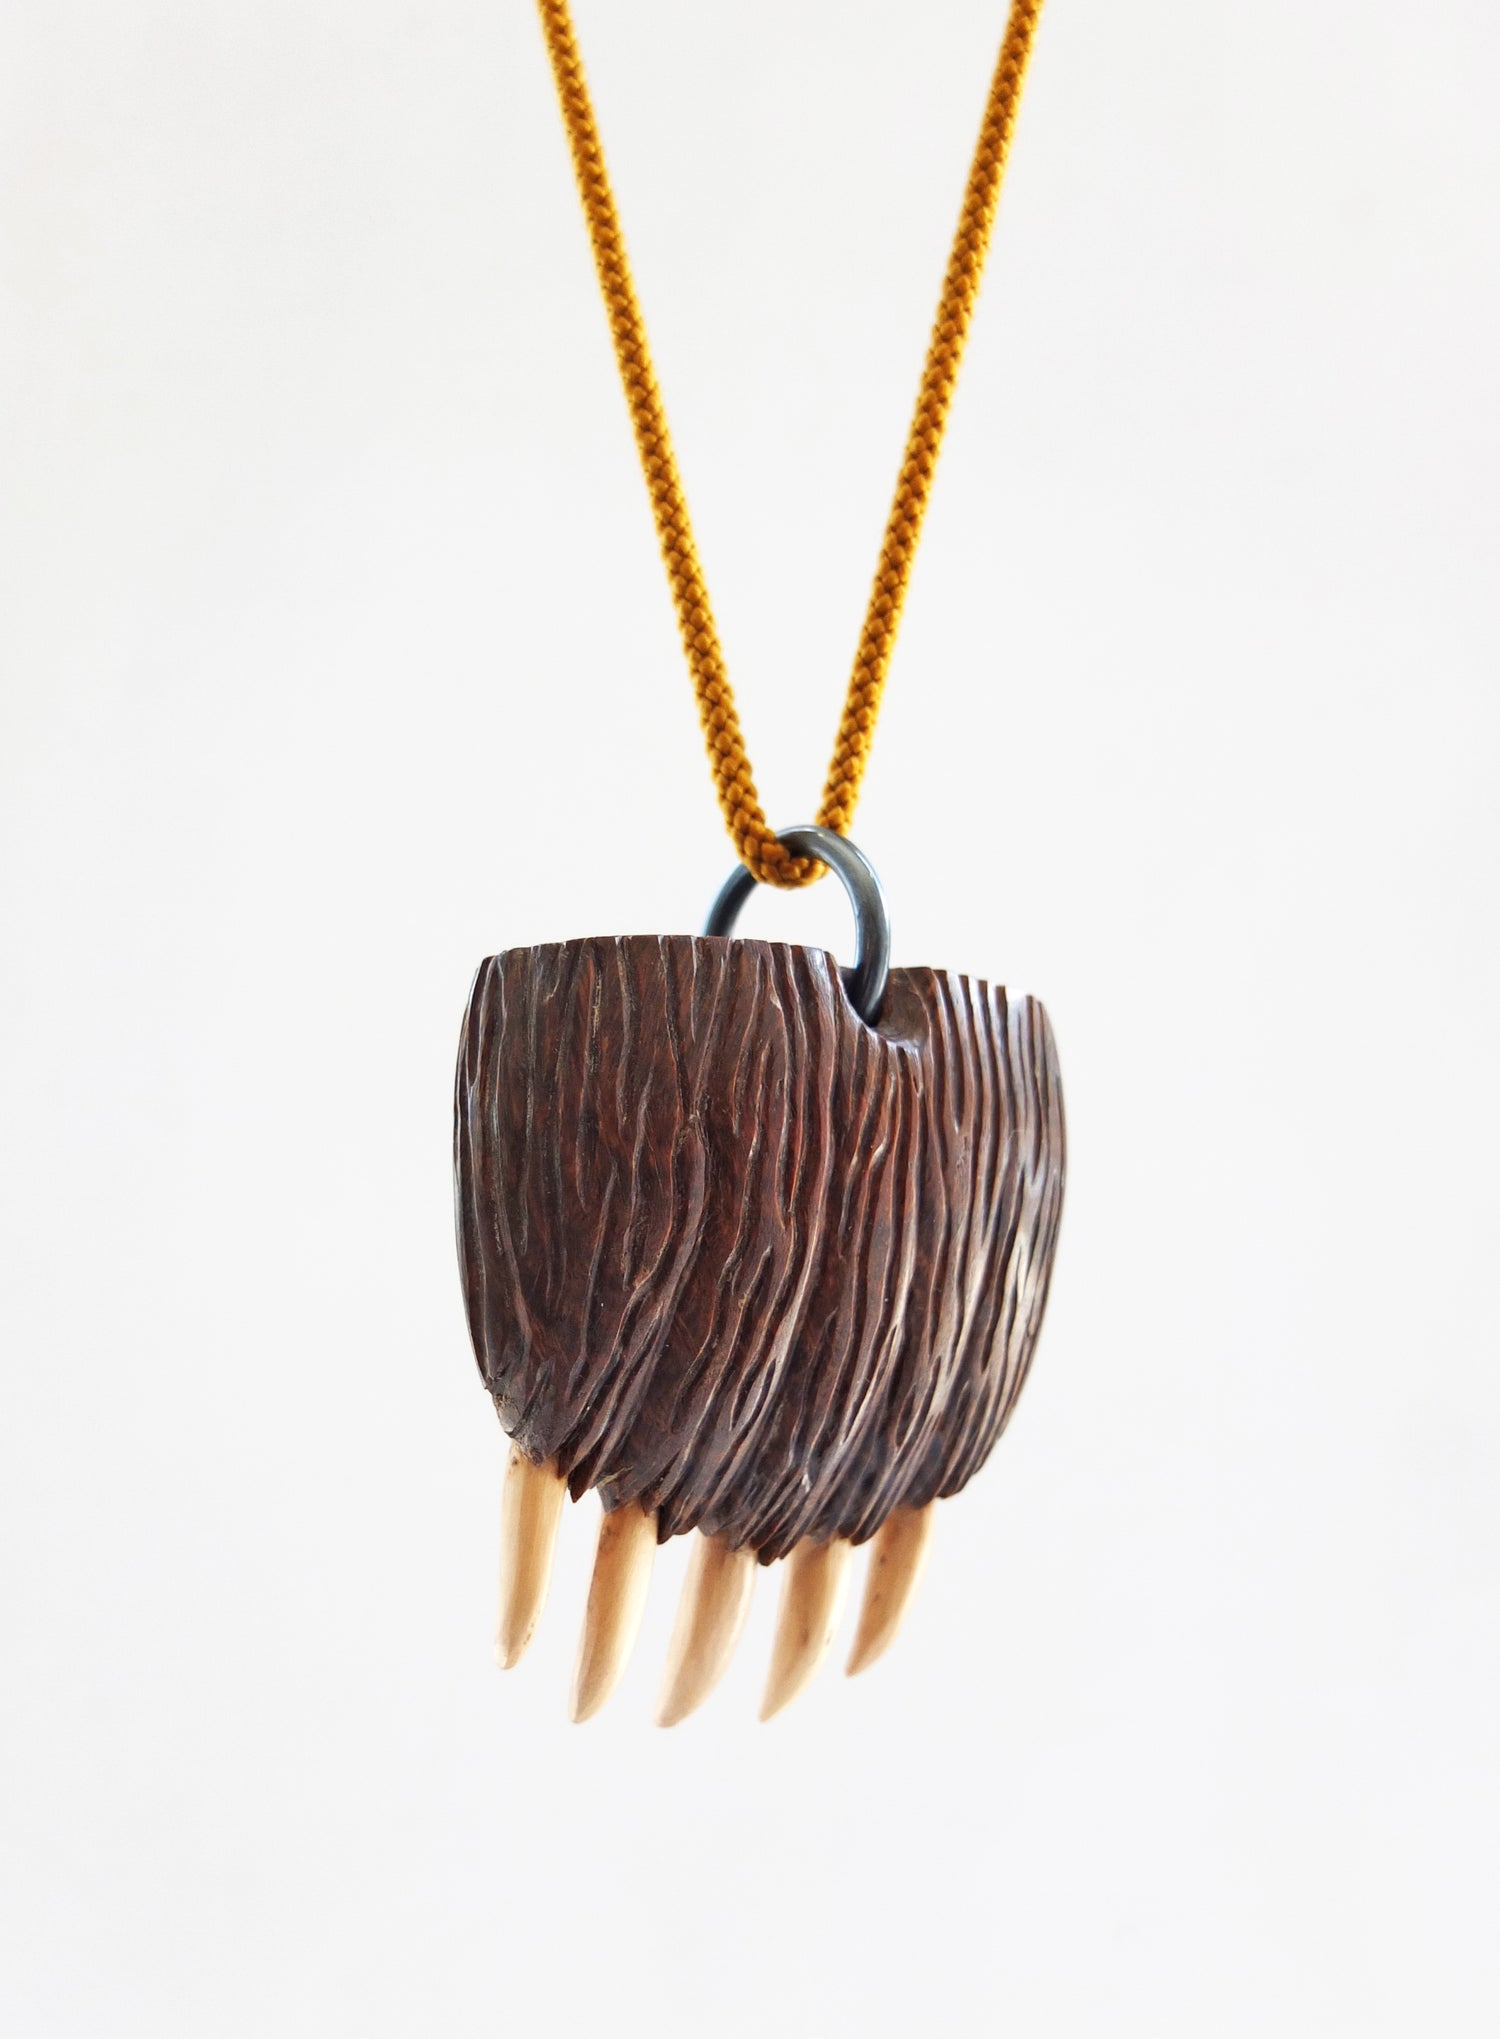 Image of Jane Dodd (New Zealand) Big Grizzly Paw pendant